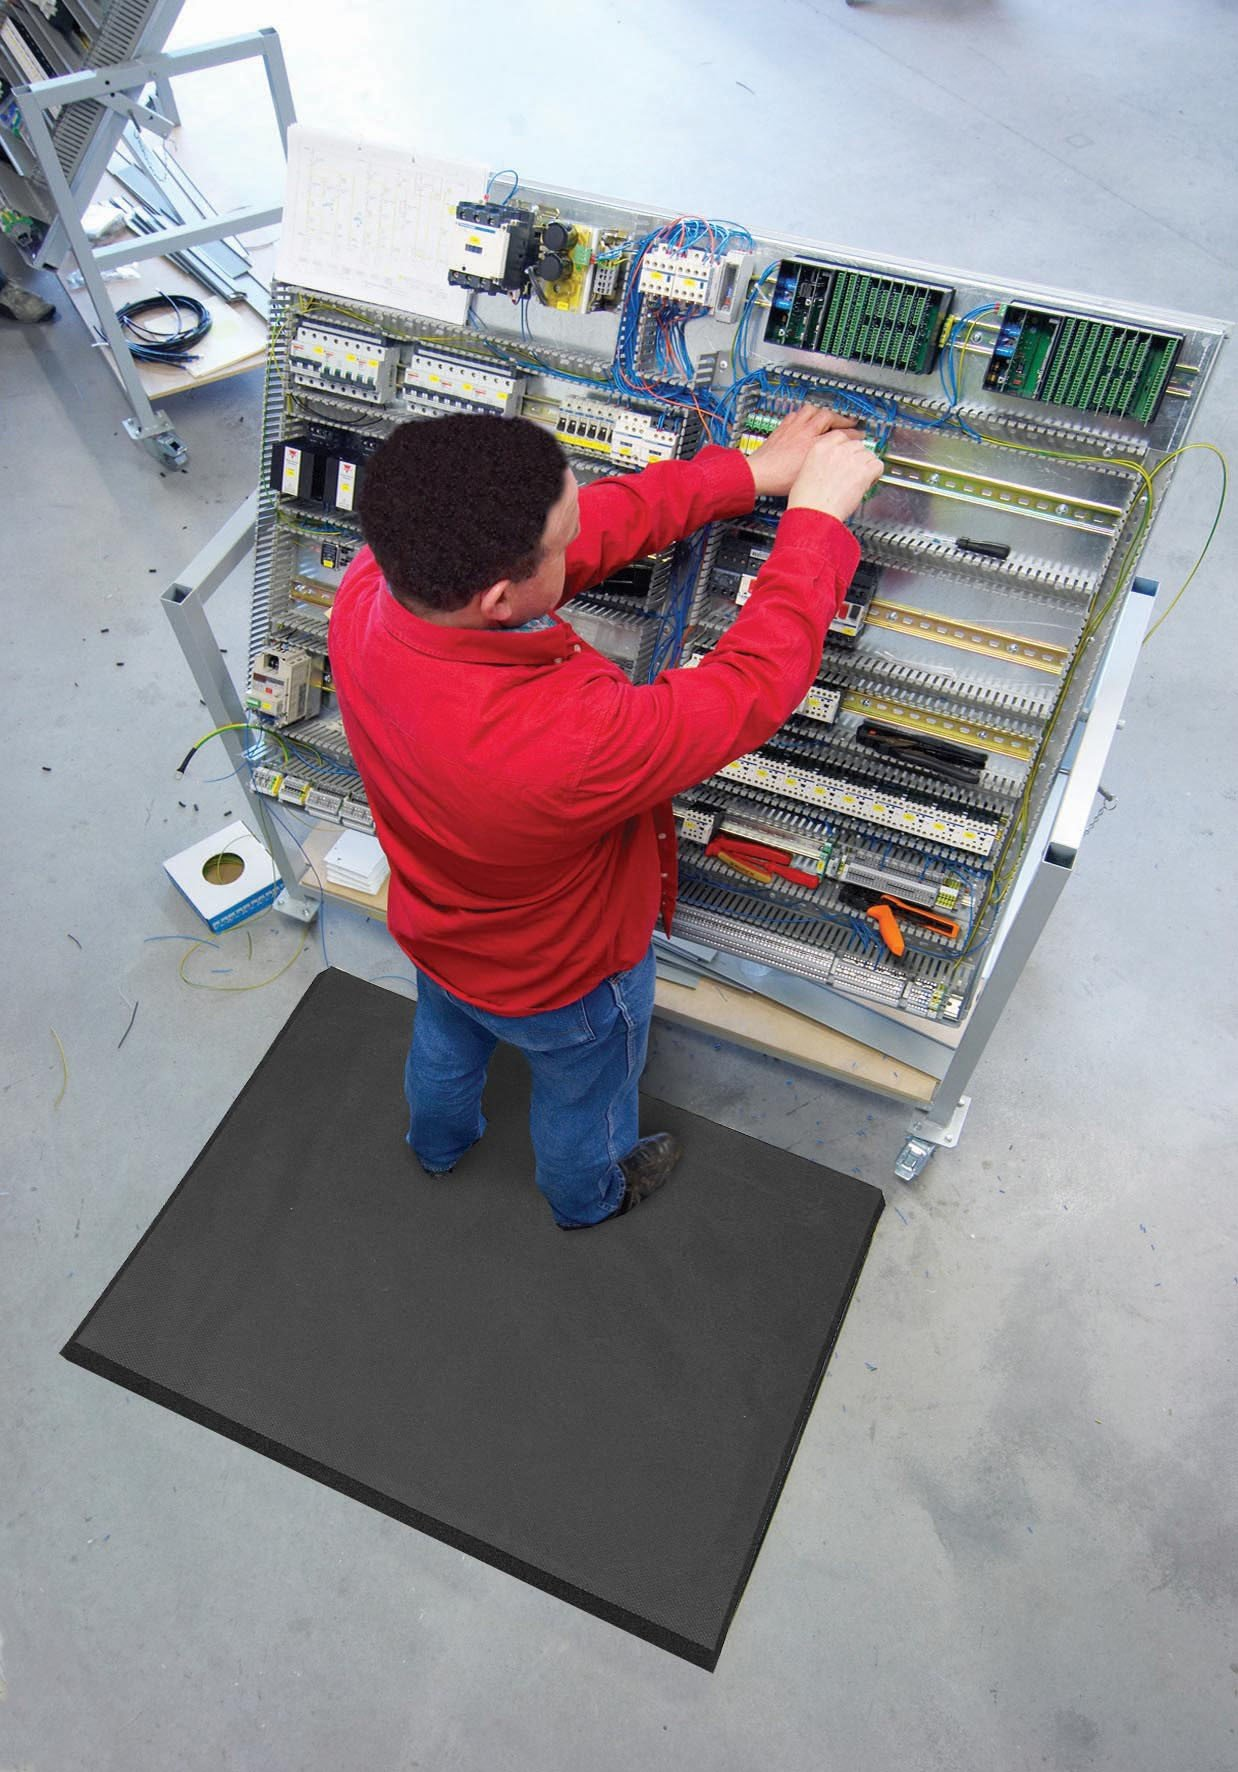 NoTrax T17 Superfoam Safety/Anti-Fatigue Floor Mat, for Dry Areas, 3' Width x 5' Length x 5/8'' Thickness, Black by NoTrax (Image #2)